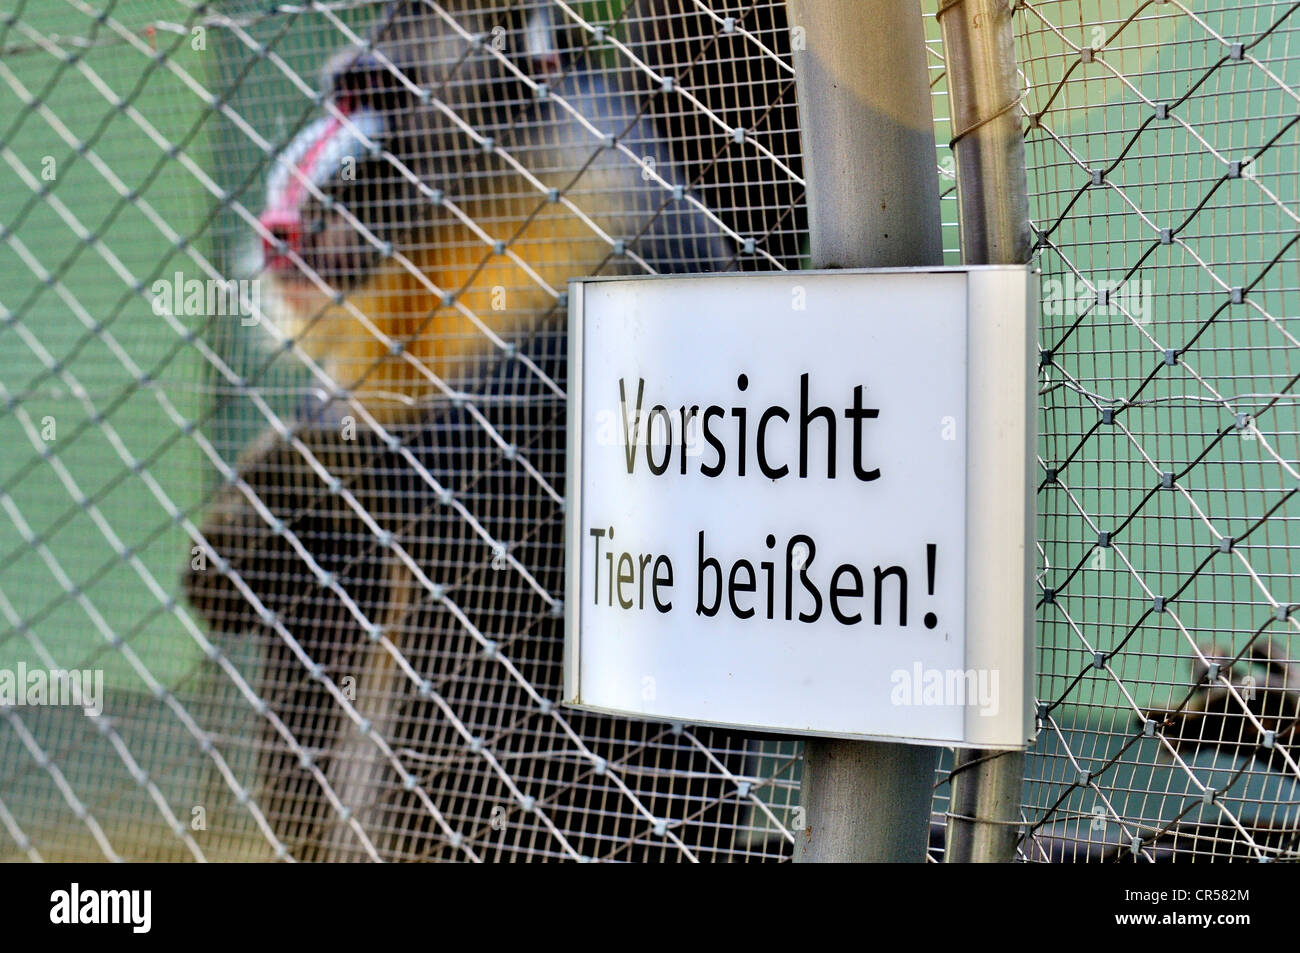 Sign, 'Vorsicht Tiere beissen' or 'Warning animals bite' on a monkey cage, Hellabrunn zoo, Munich, - Stock Image